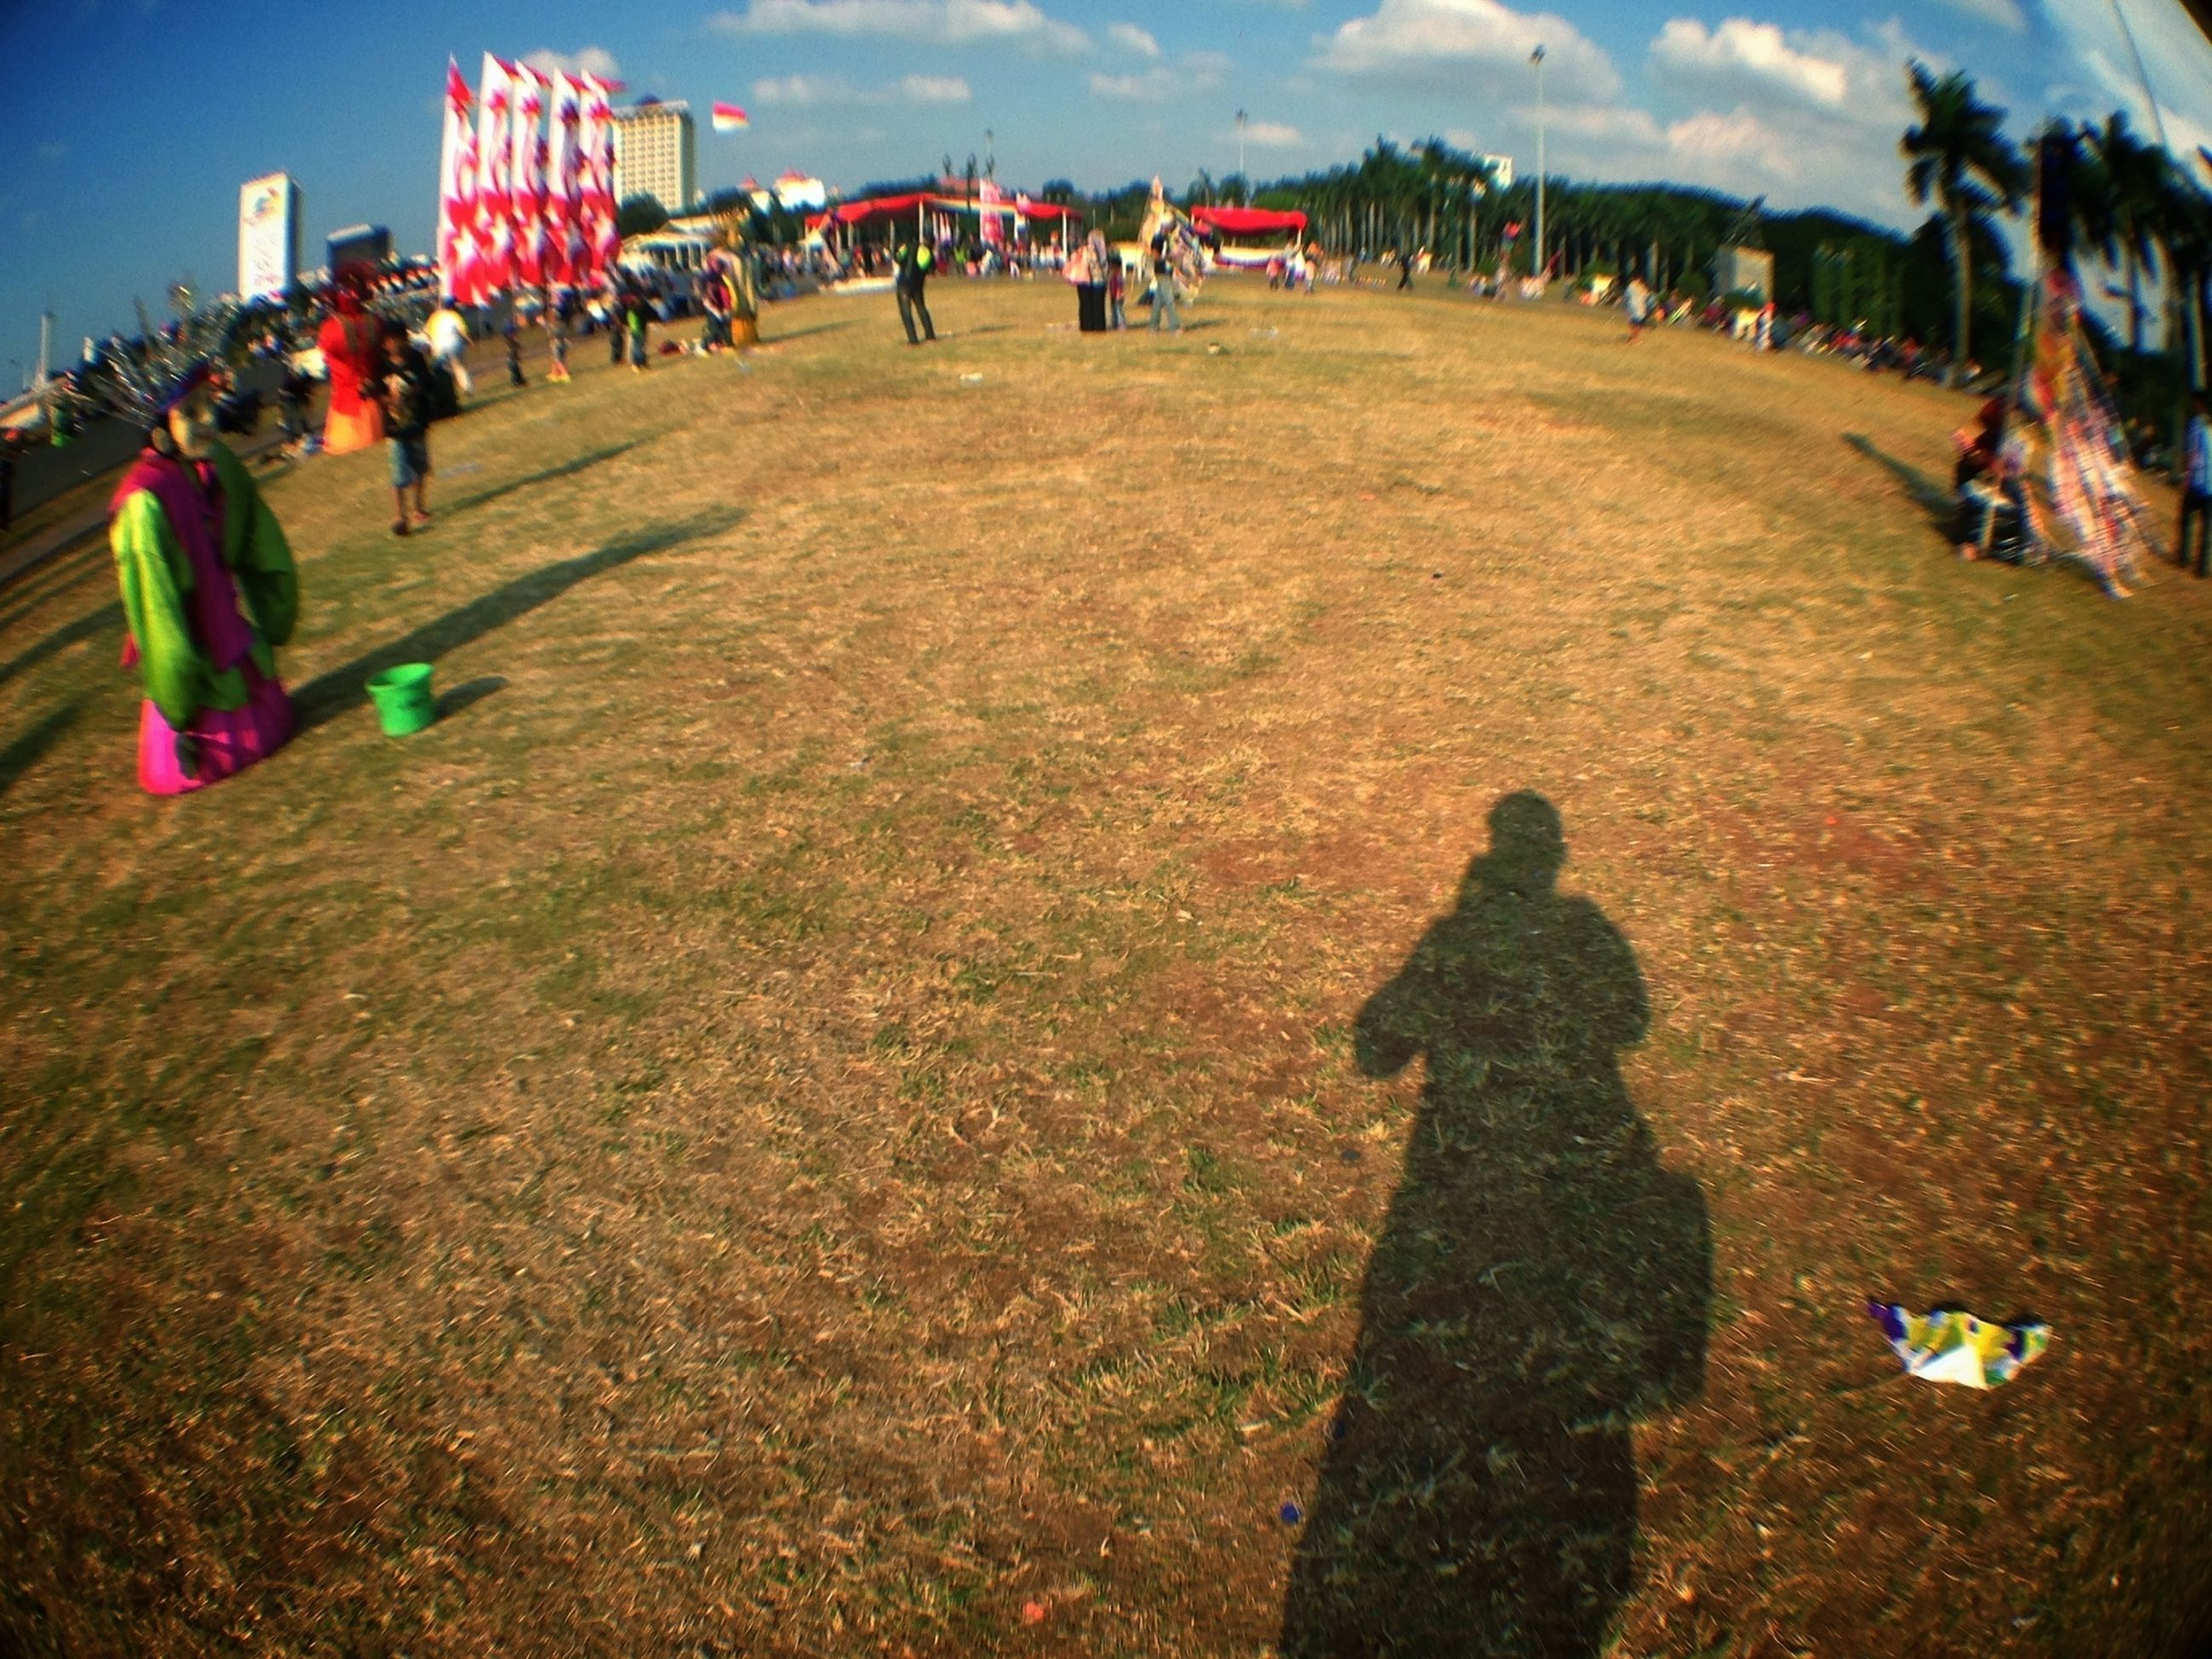 grass, men, leisure activity, large group of people, lifestyles, field, person, sky, shadow, sitting, landscape, outdoors, sunlight, day, grassy, high angle view, human representation, park - man made space, unrecognizable person